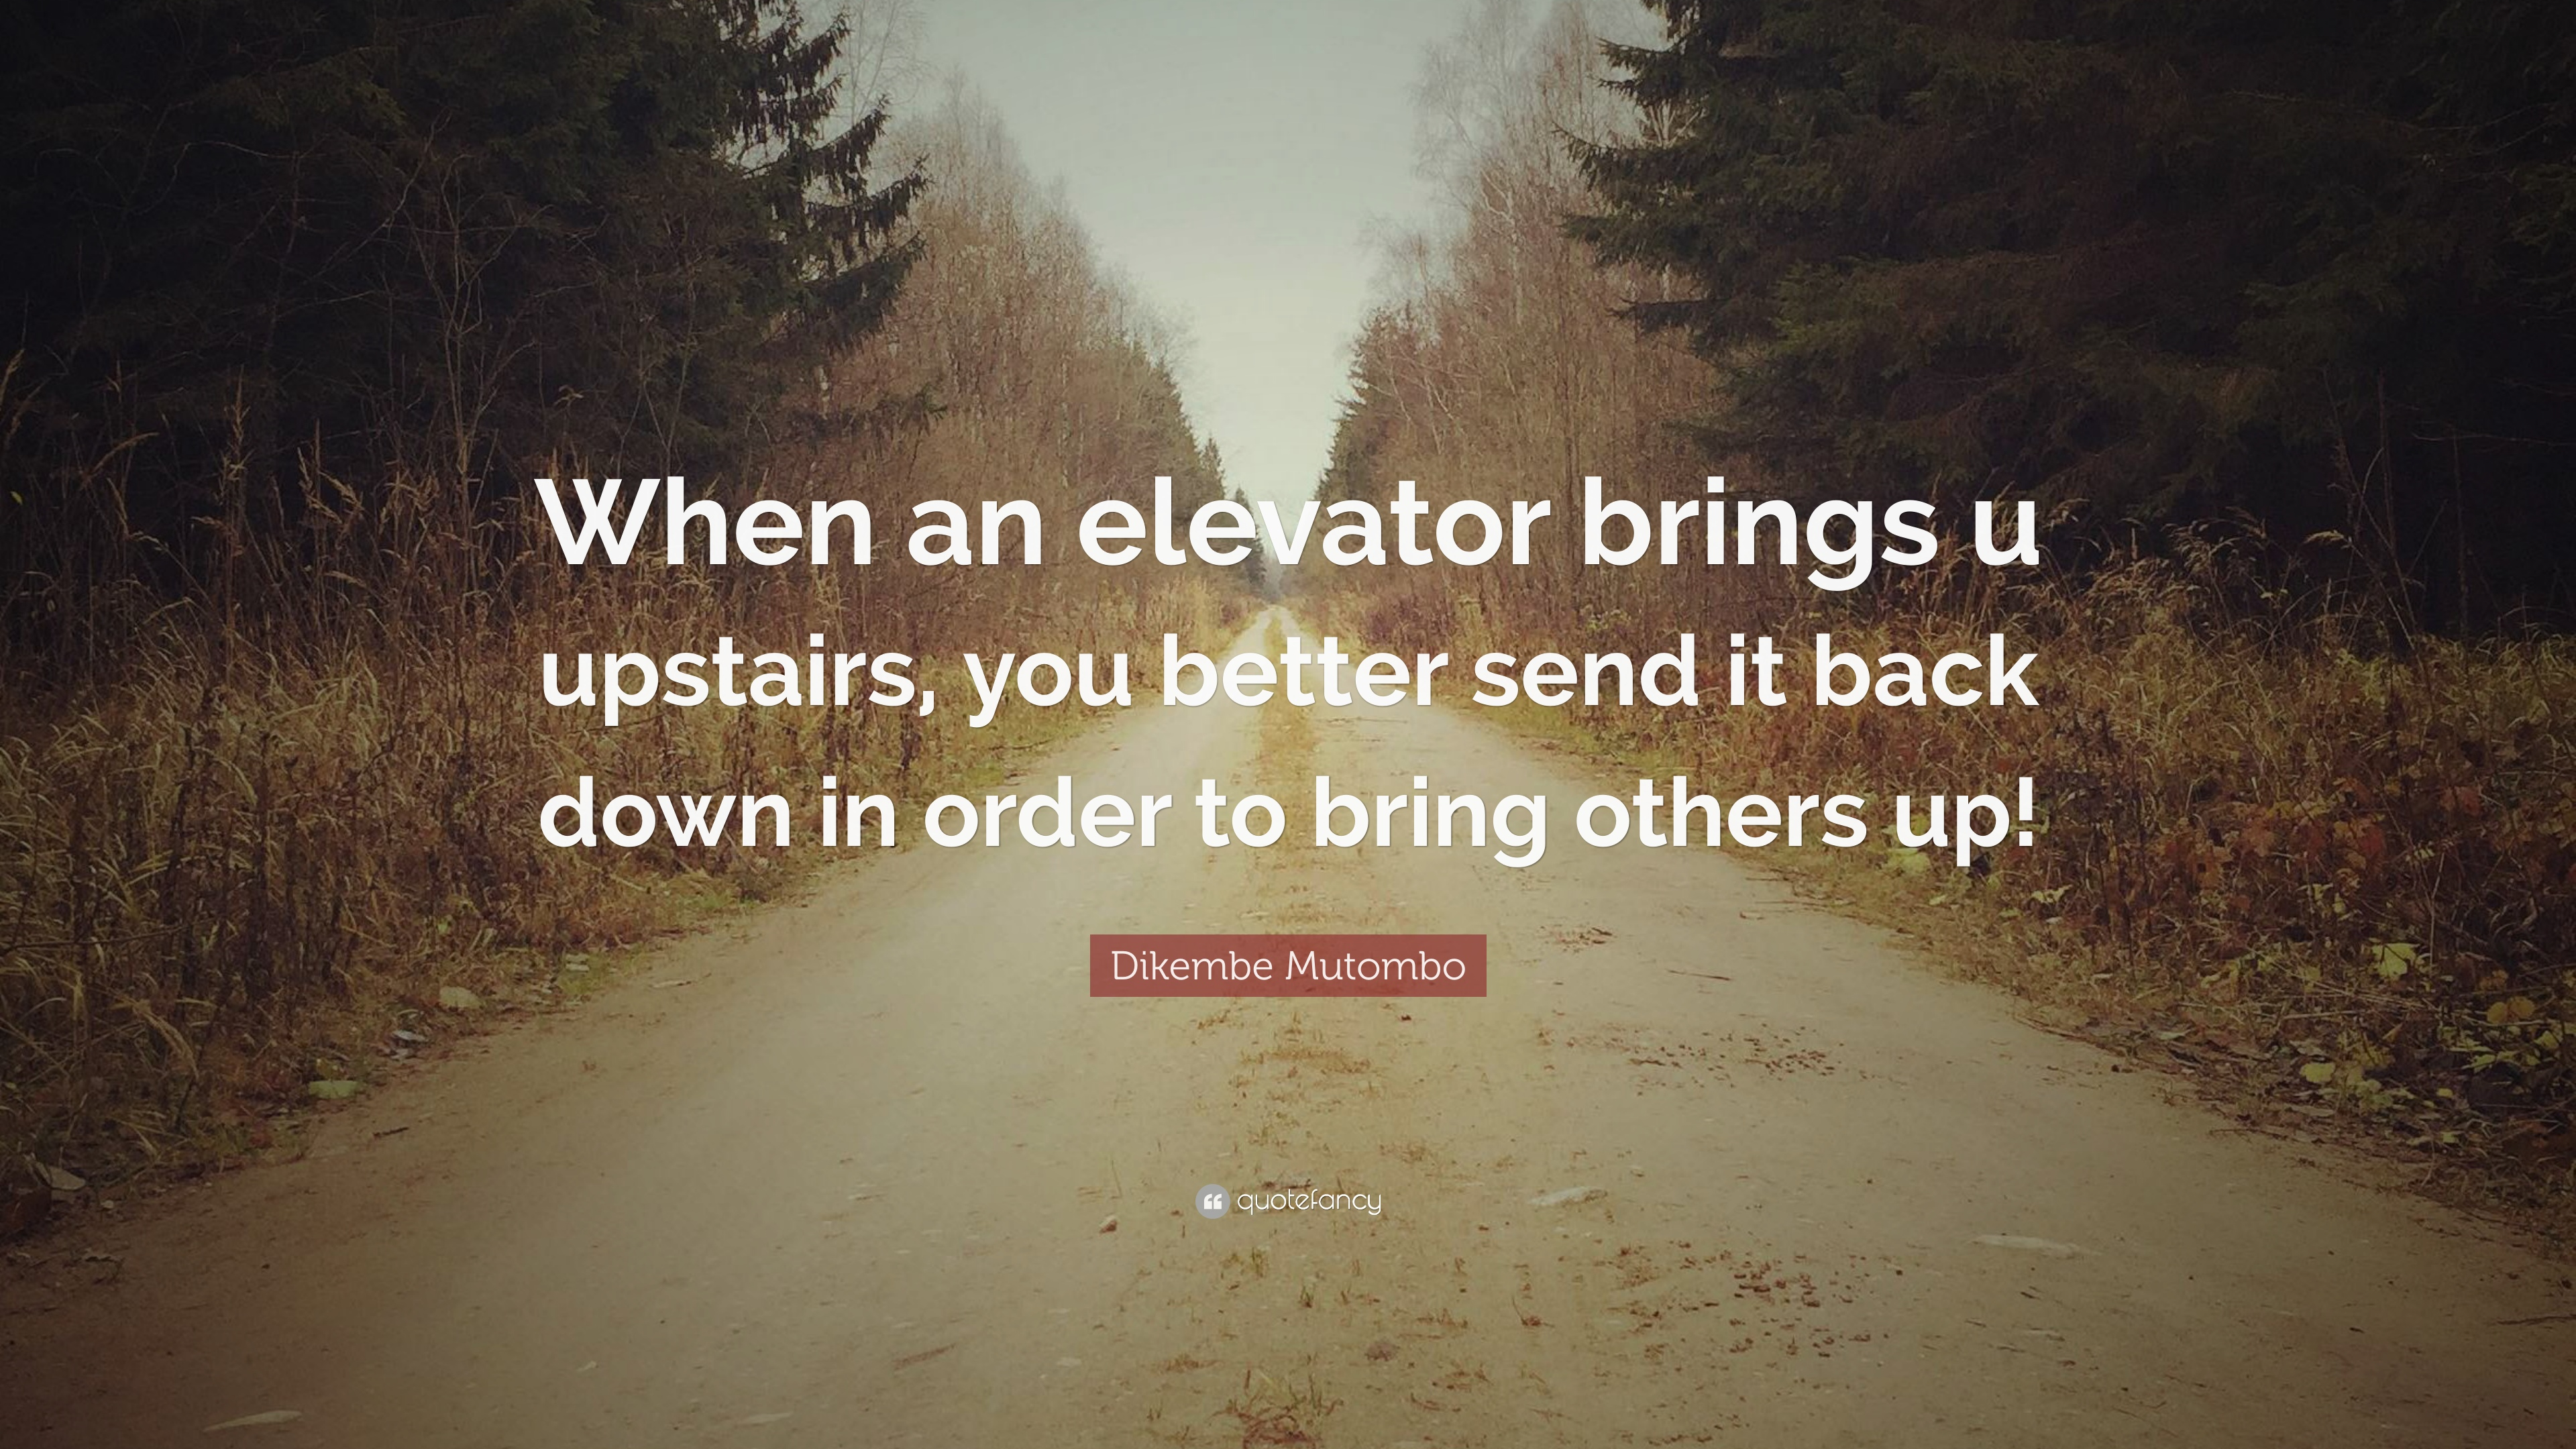 Mbe Mutombo Quote When An Elevator Brings U Upstairs You Better Send It